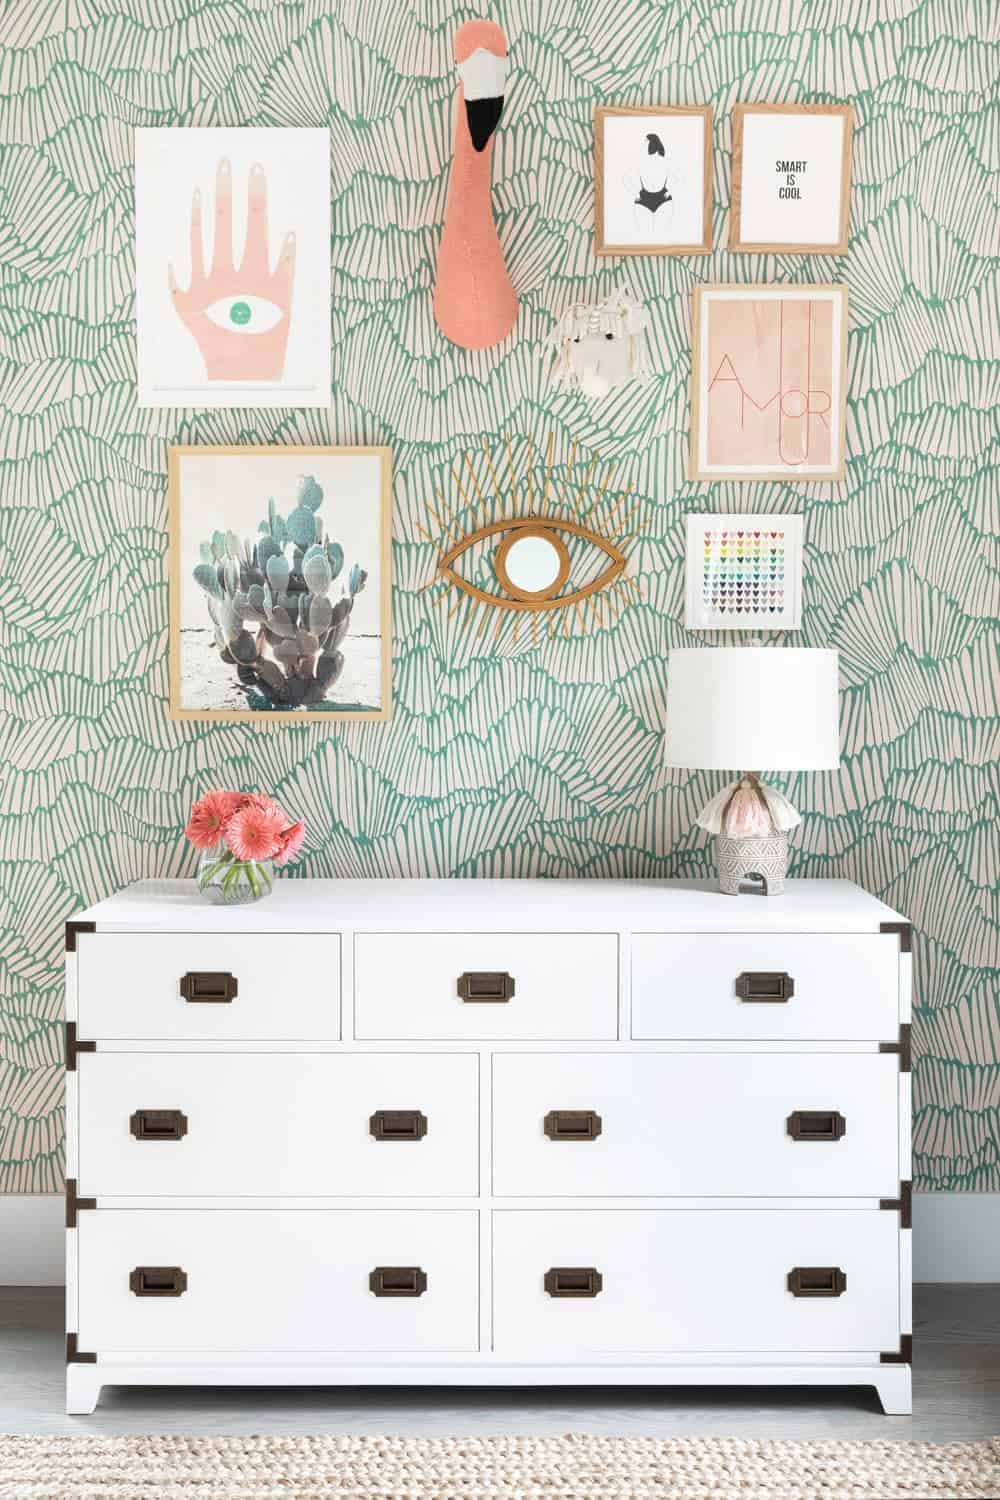 A close up look at the kids' bedroom's charming wall design with lots of wall decors on display.